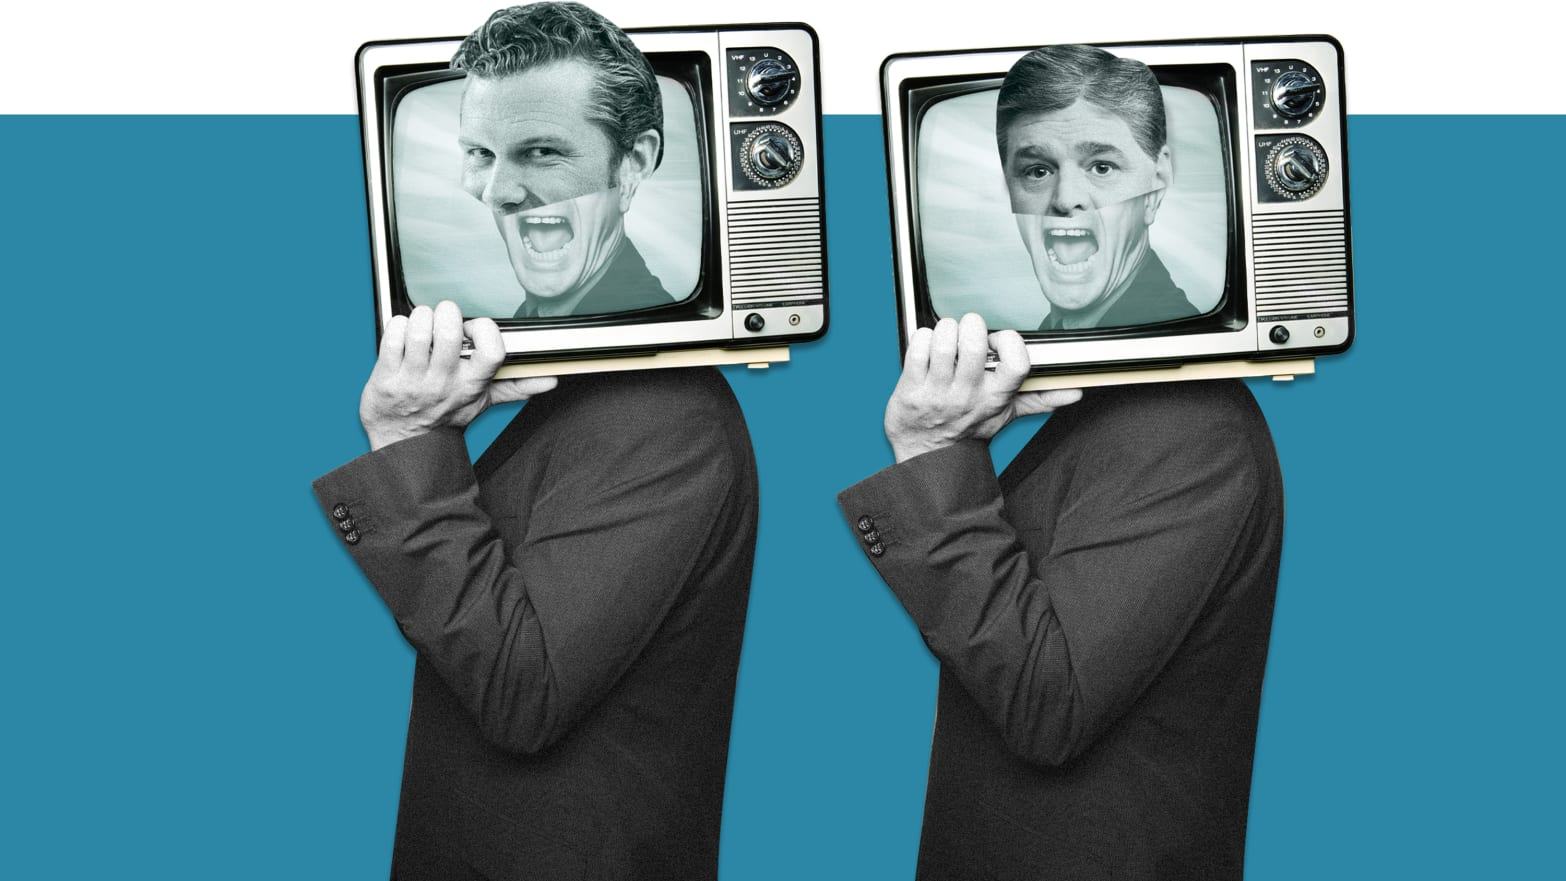 image of sean hannity and pete hegseth in black and white on tv in 50s style dancing with teal background Sean Hannity Laura Ingraham Fox & Friends Pete Hegseth Ainsley Earhardt